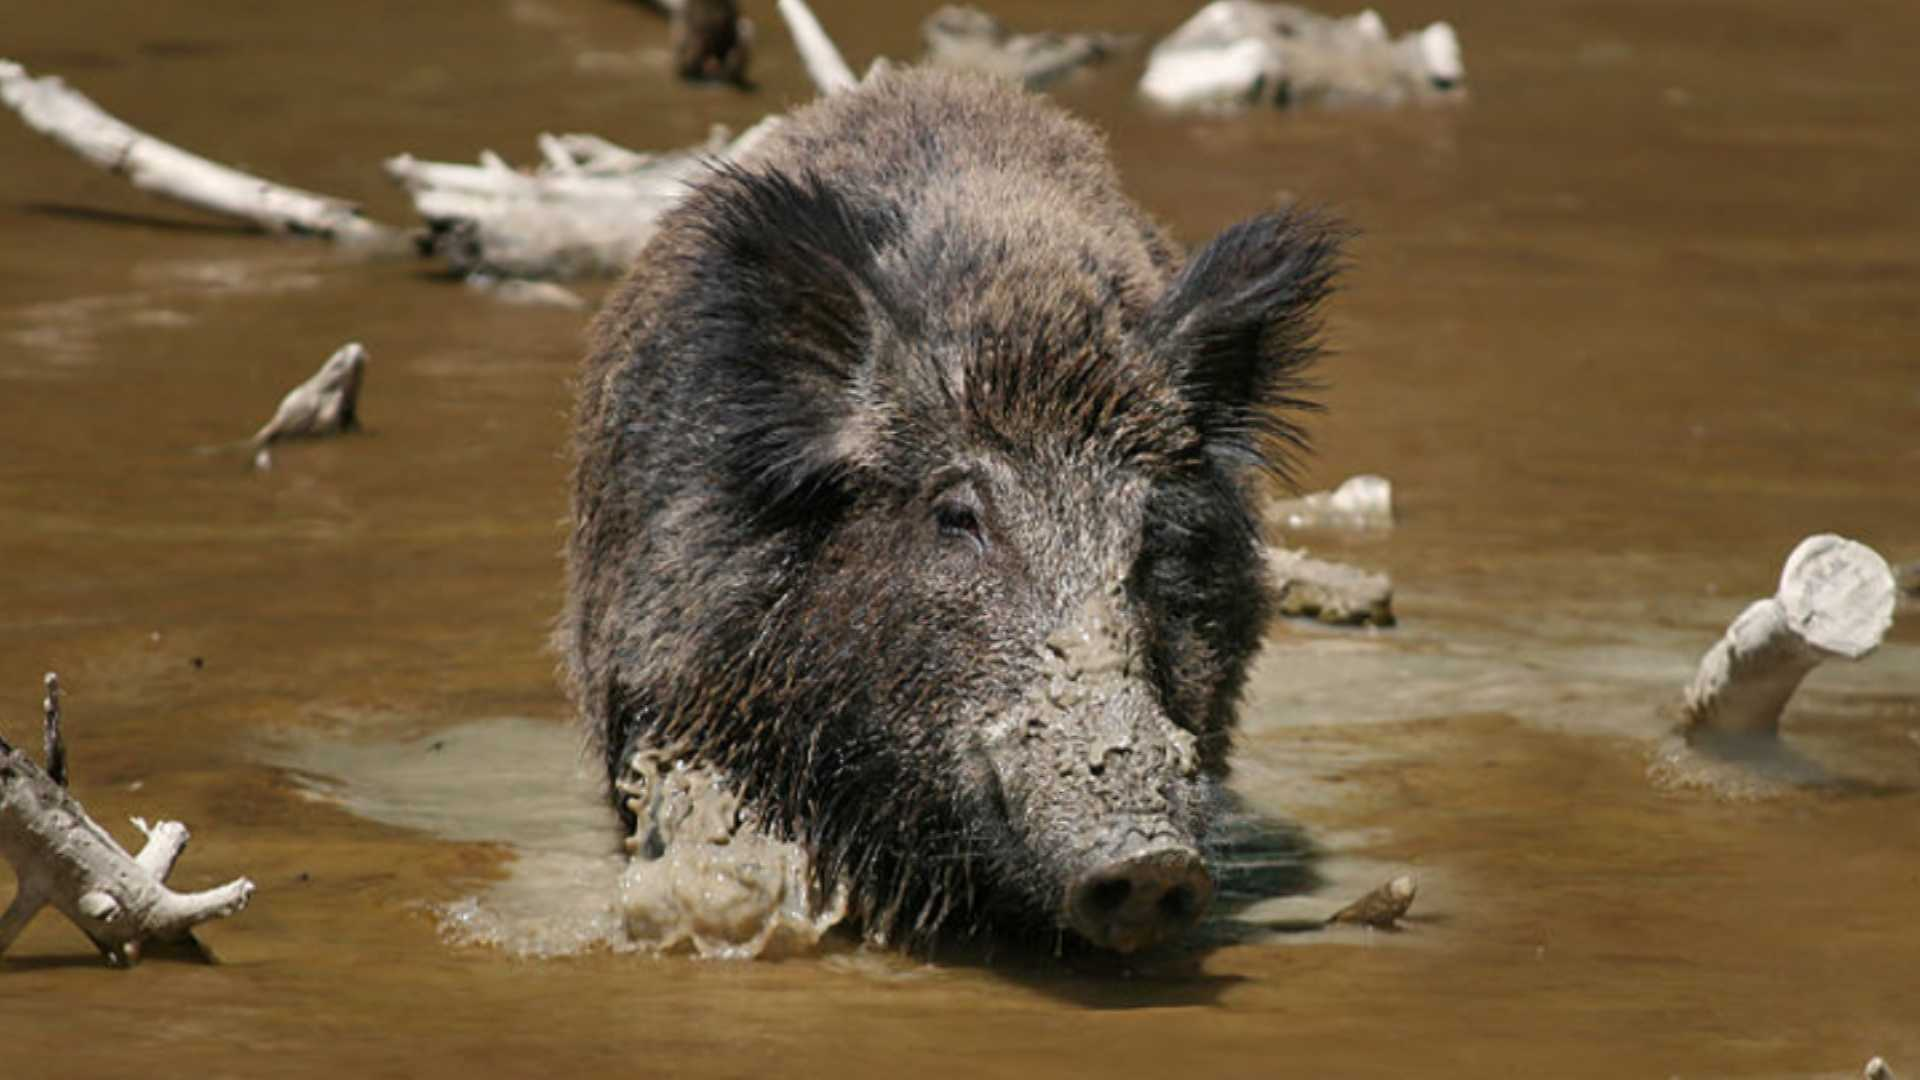 04-07-13 Lawmakers look to ban wild boar - img